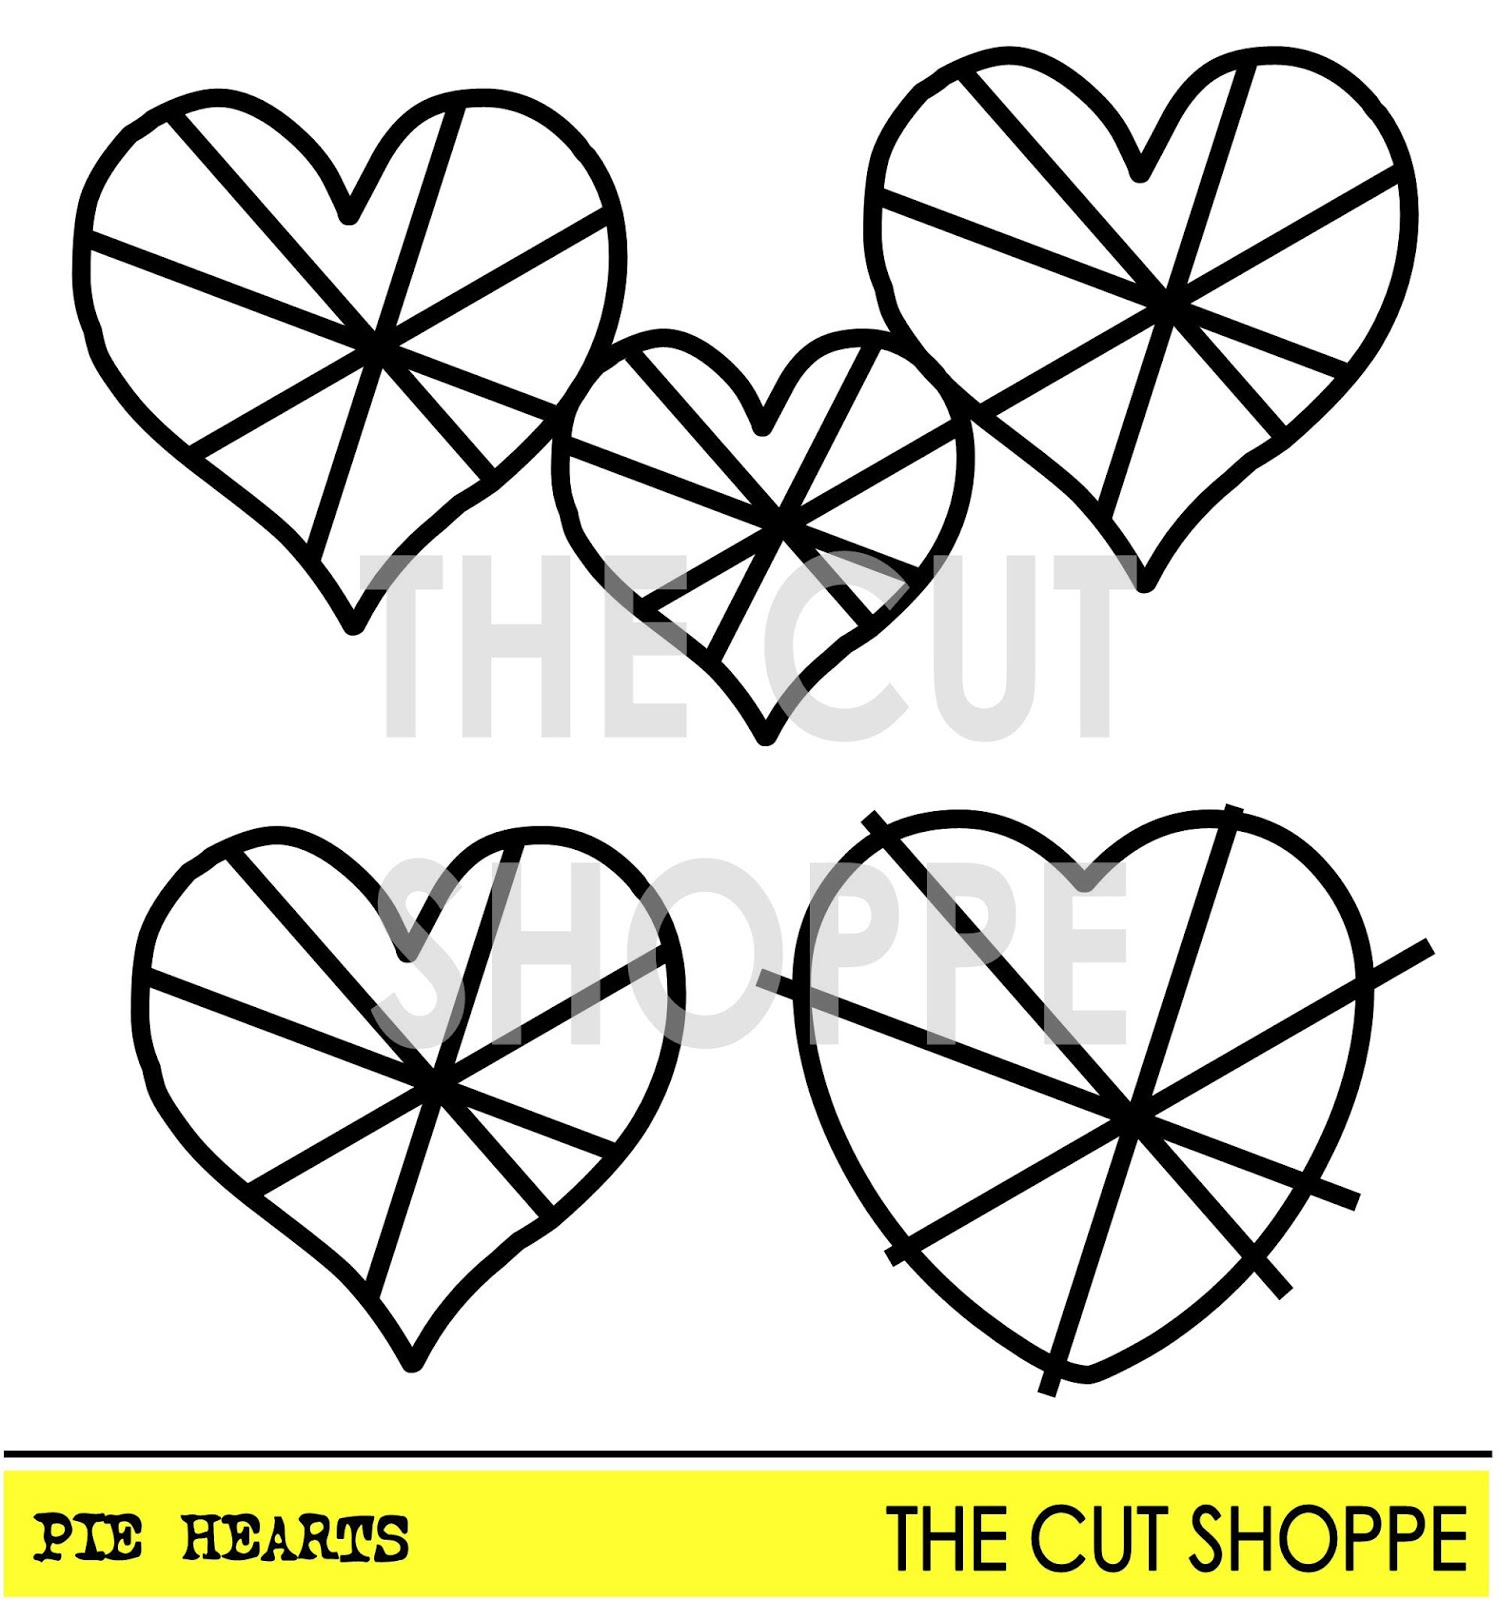 https://www.etsy.com/listing/193530389/the-pie-hearts-cut-file-consists-of?ref=shop_home_active_15